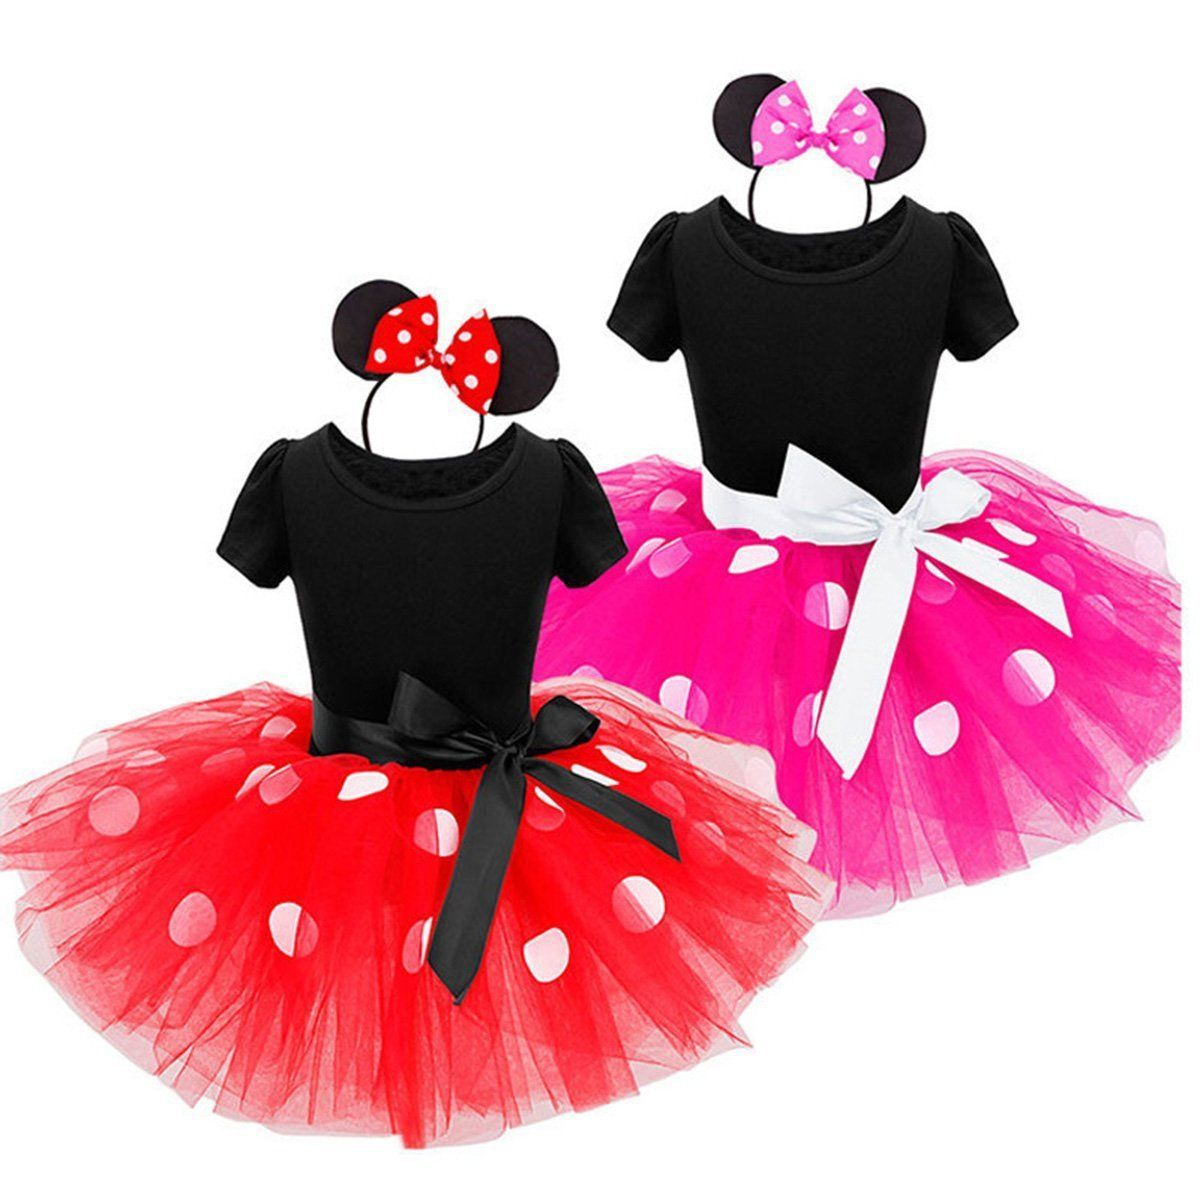 0d7513e2d $7.99 - Kids Girls Baby Toddler Minnie Mouse Outfits Party Costume Tutu  Dress + Headband #ebay #Fashion